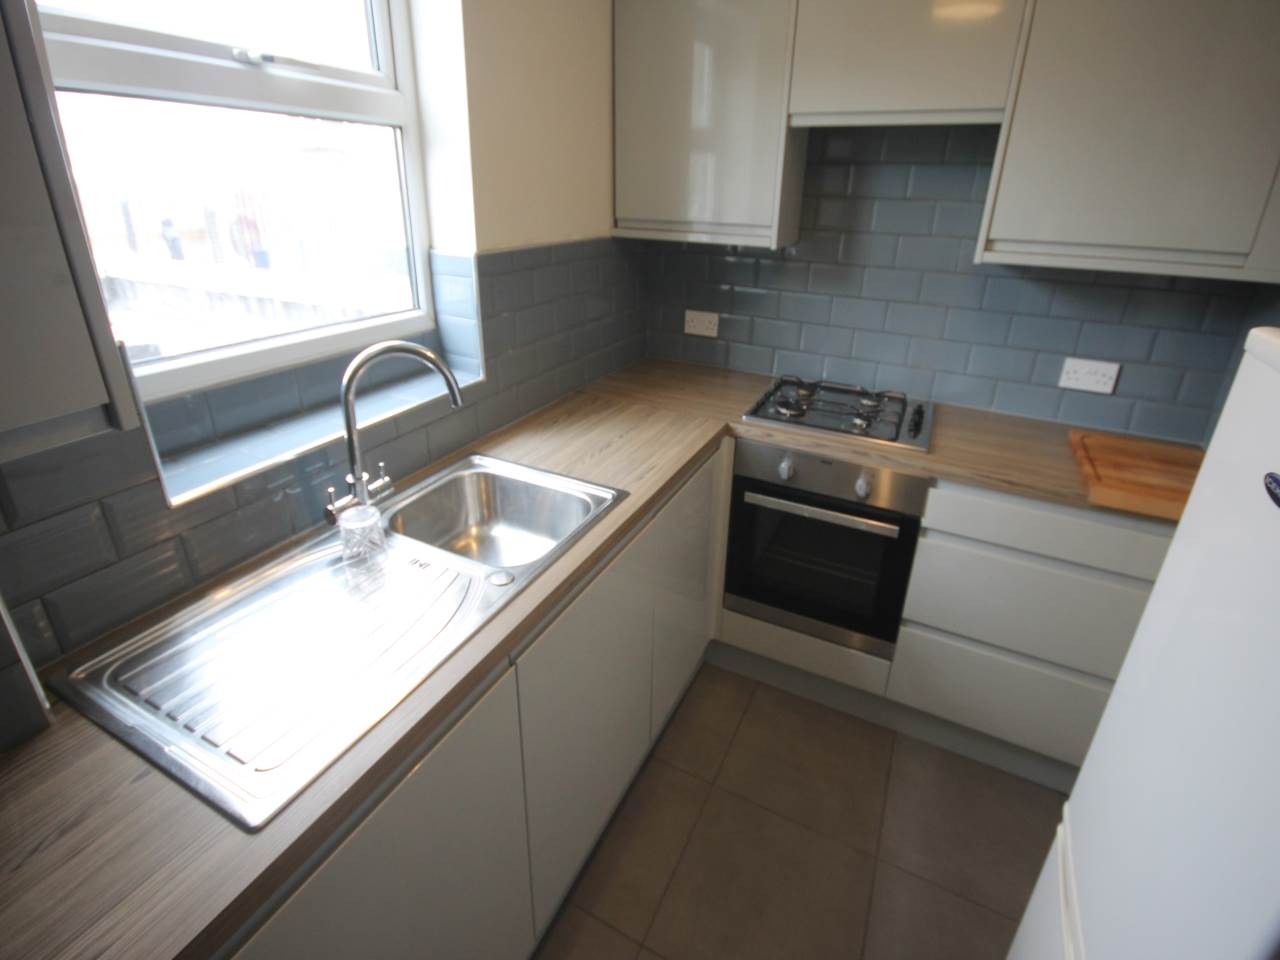 3 bed flat to rent in Walthamstow, E17